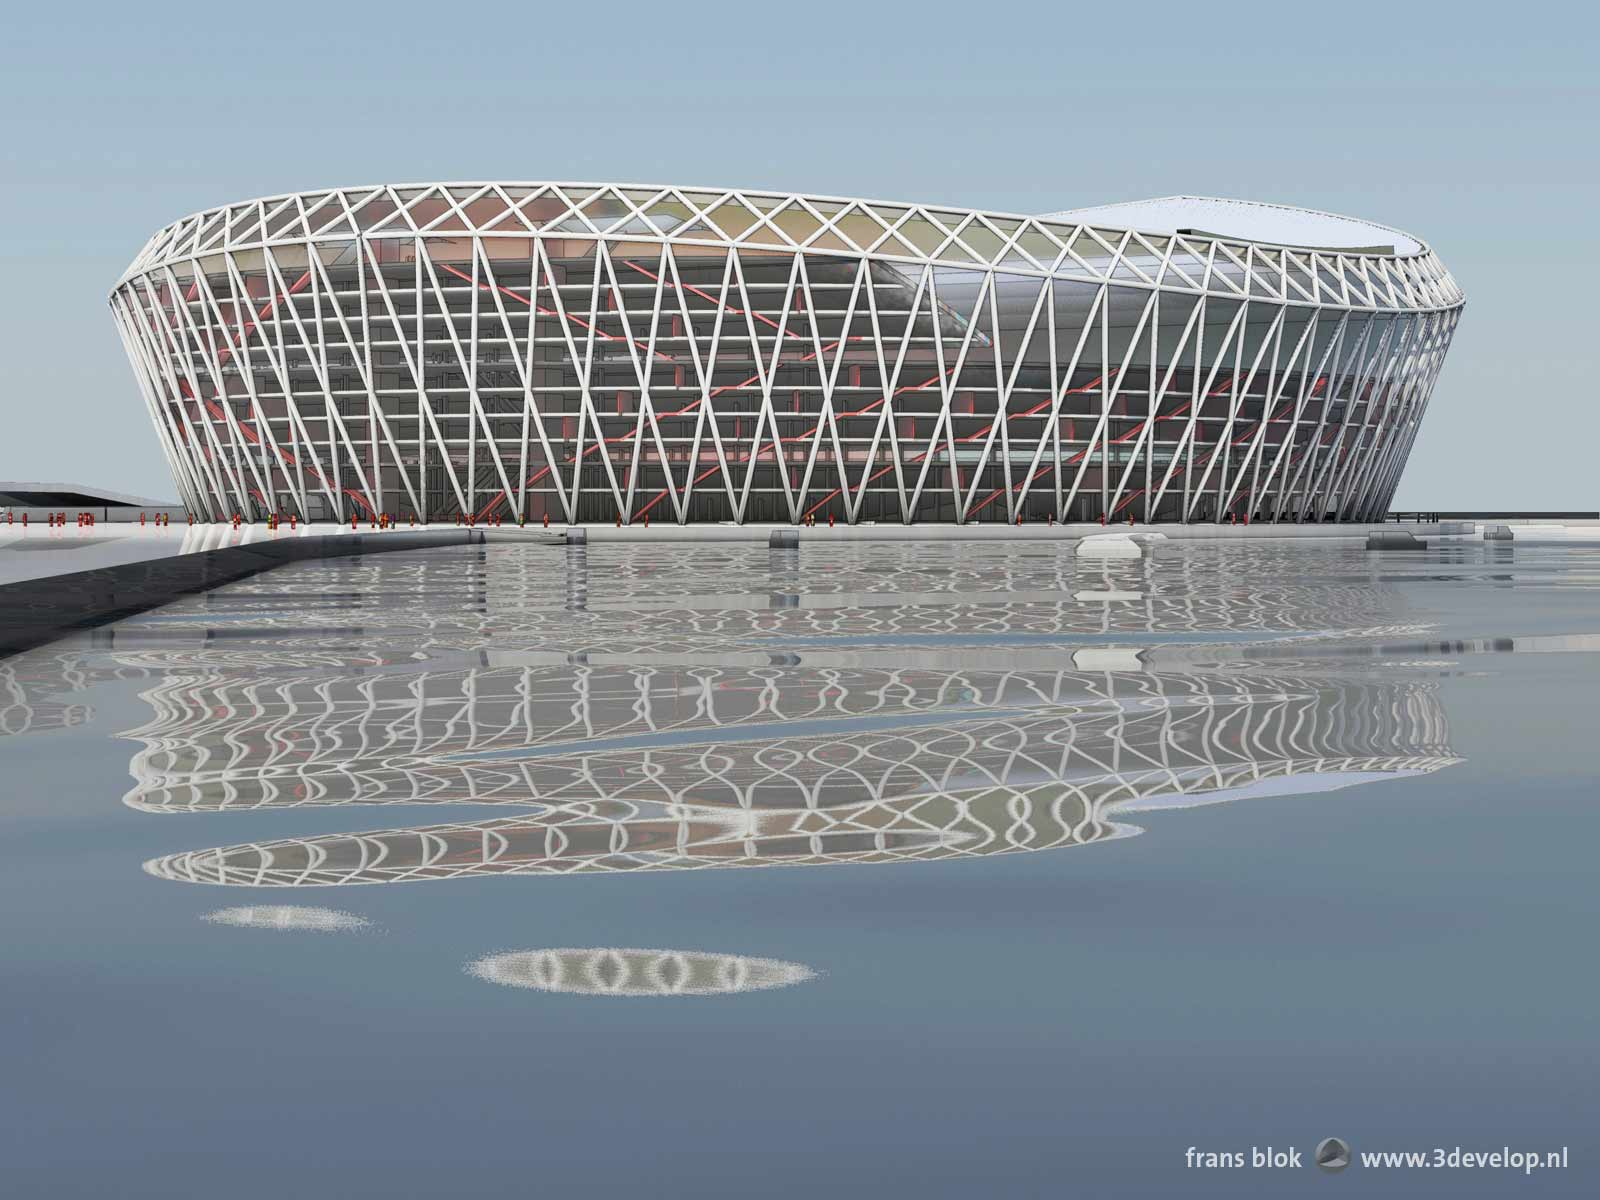 Eye level perspective of the proposed new stadium for Feyenoord, as seen from Piet Smit quay